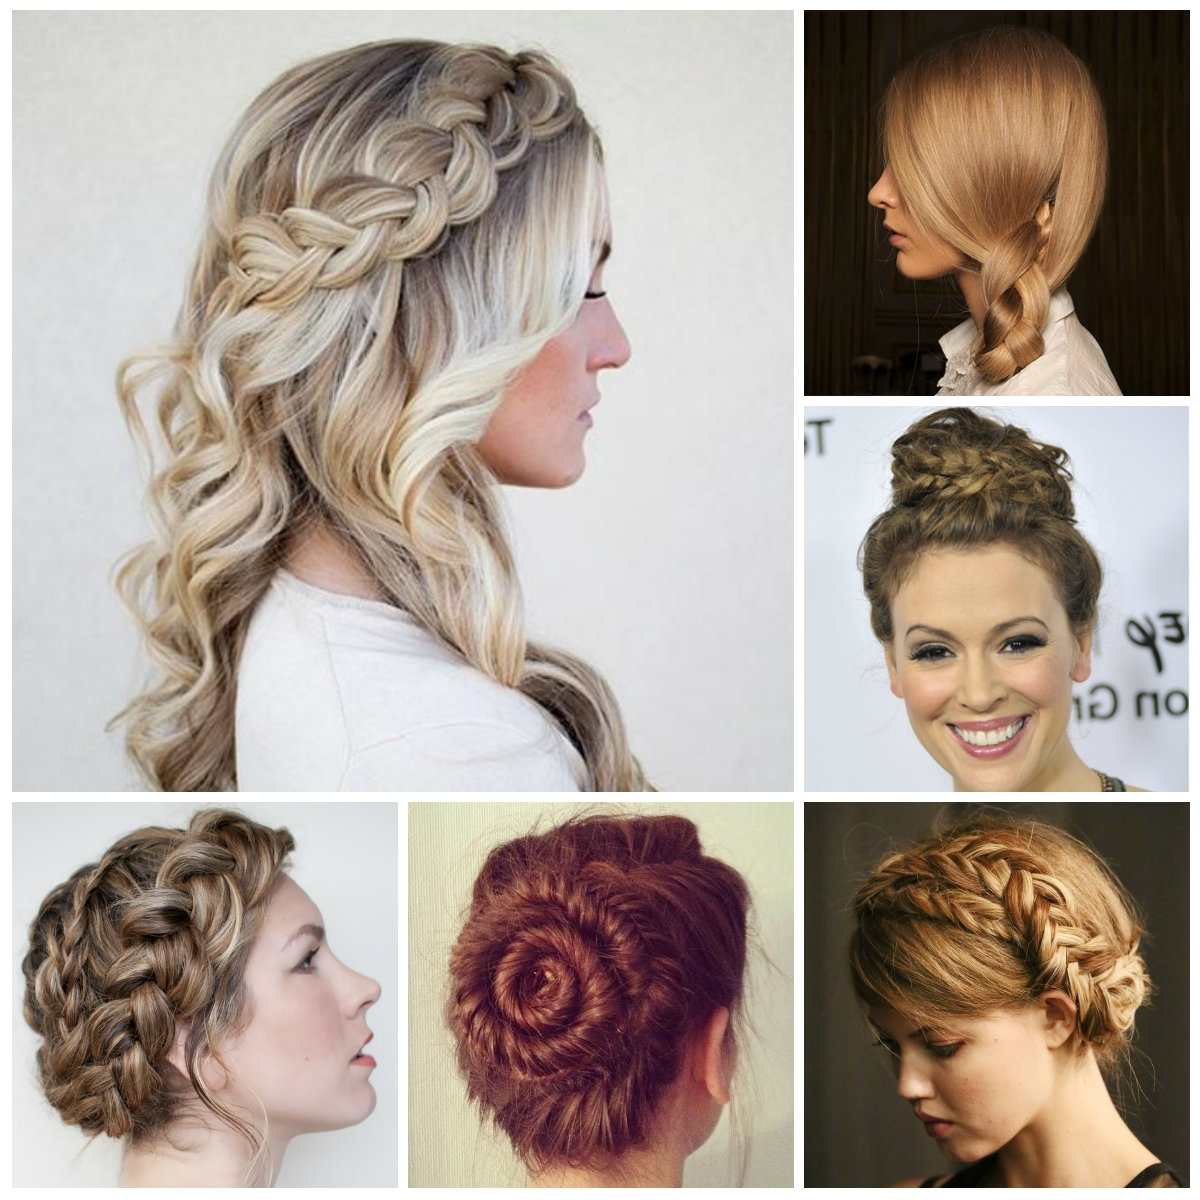 Updo Hairstyles : Easy Half Up Half Down Hairstyles For 2017 Image Regarding Half Up Half Down Updo Hairstyles (View 15 of 15)